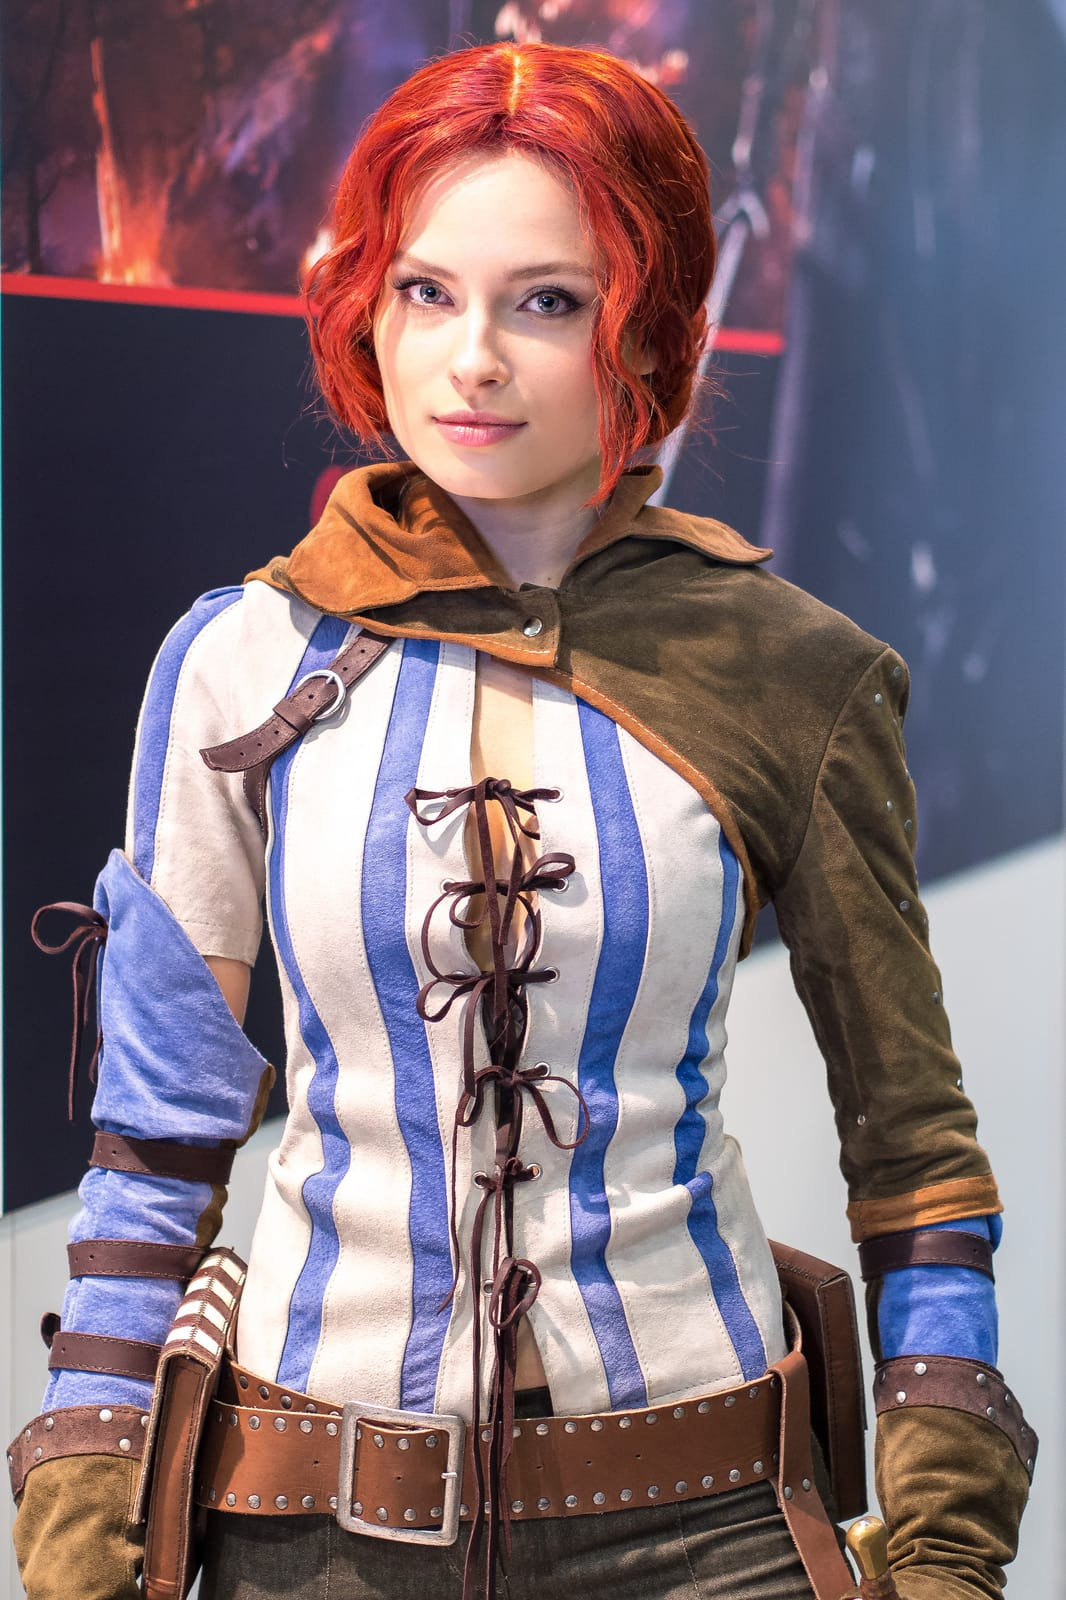 Triss merigold cosplay adult clips